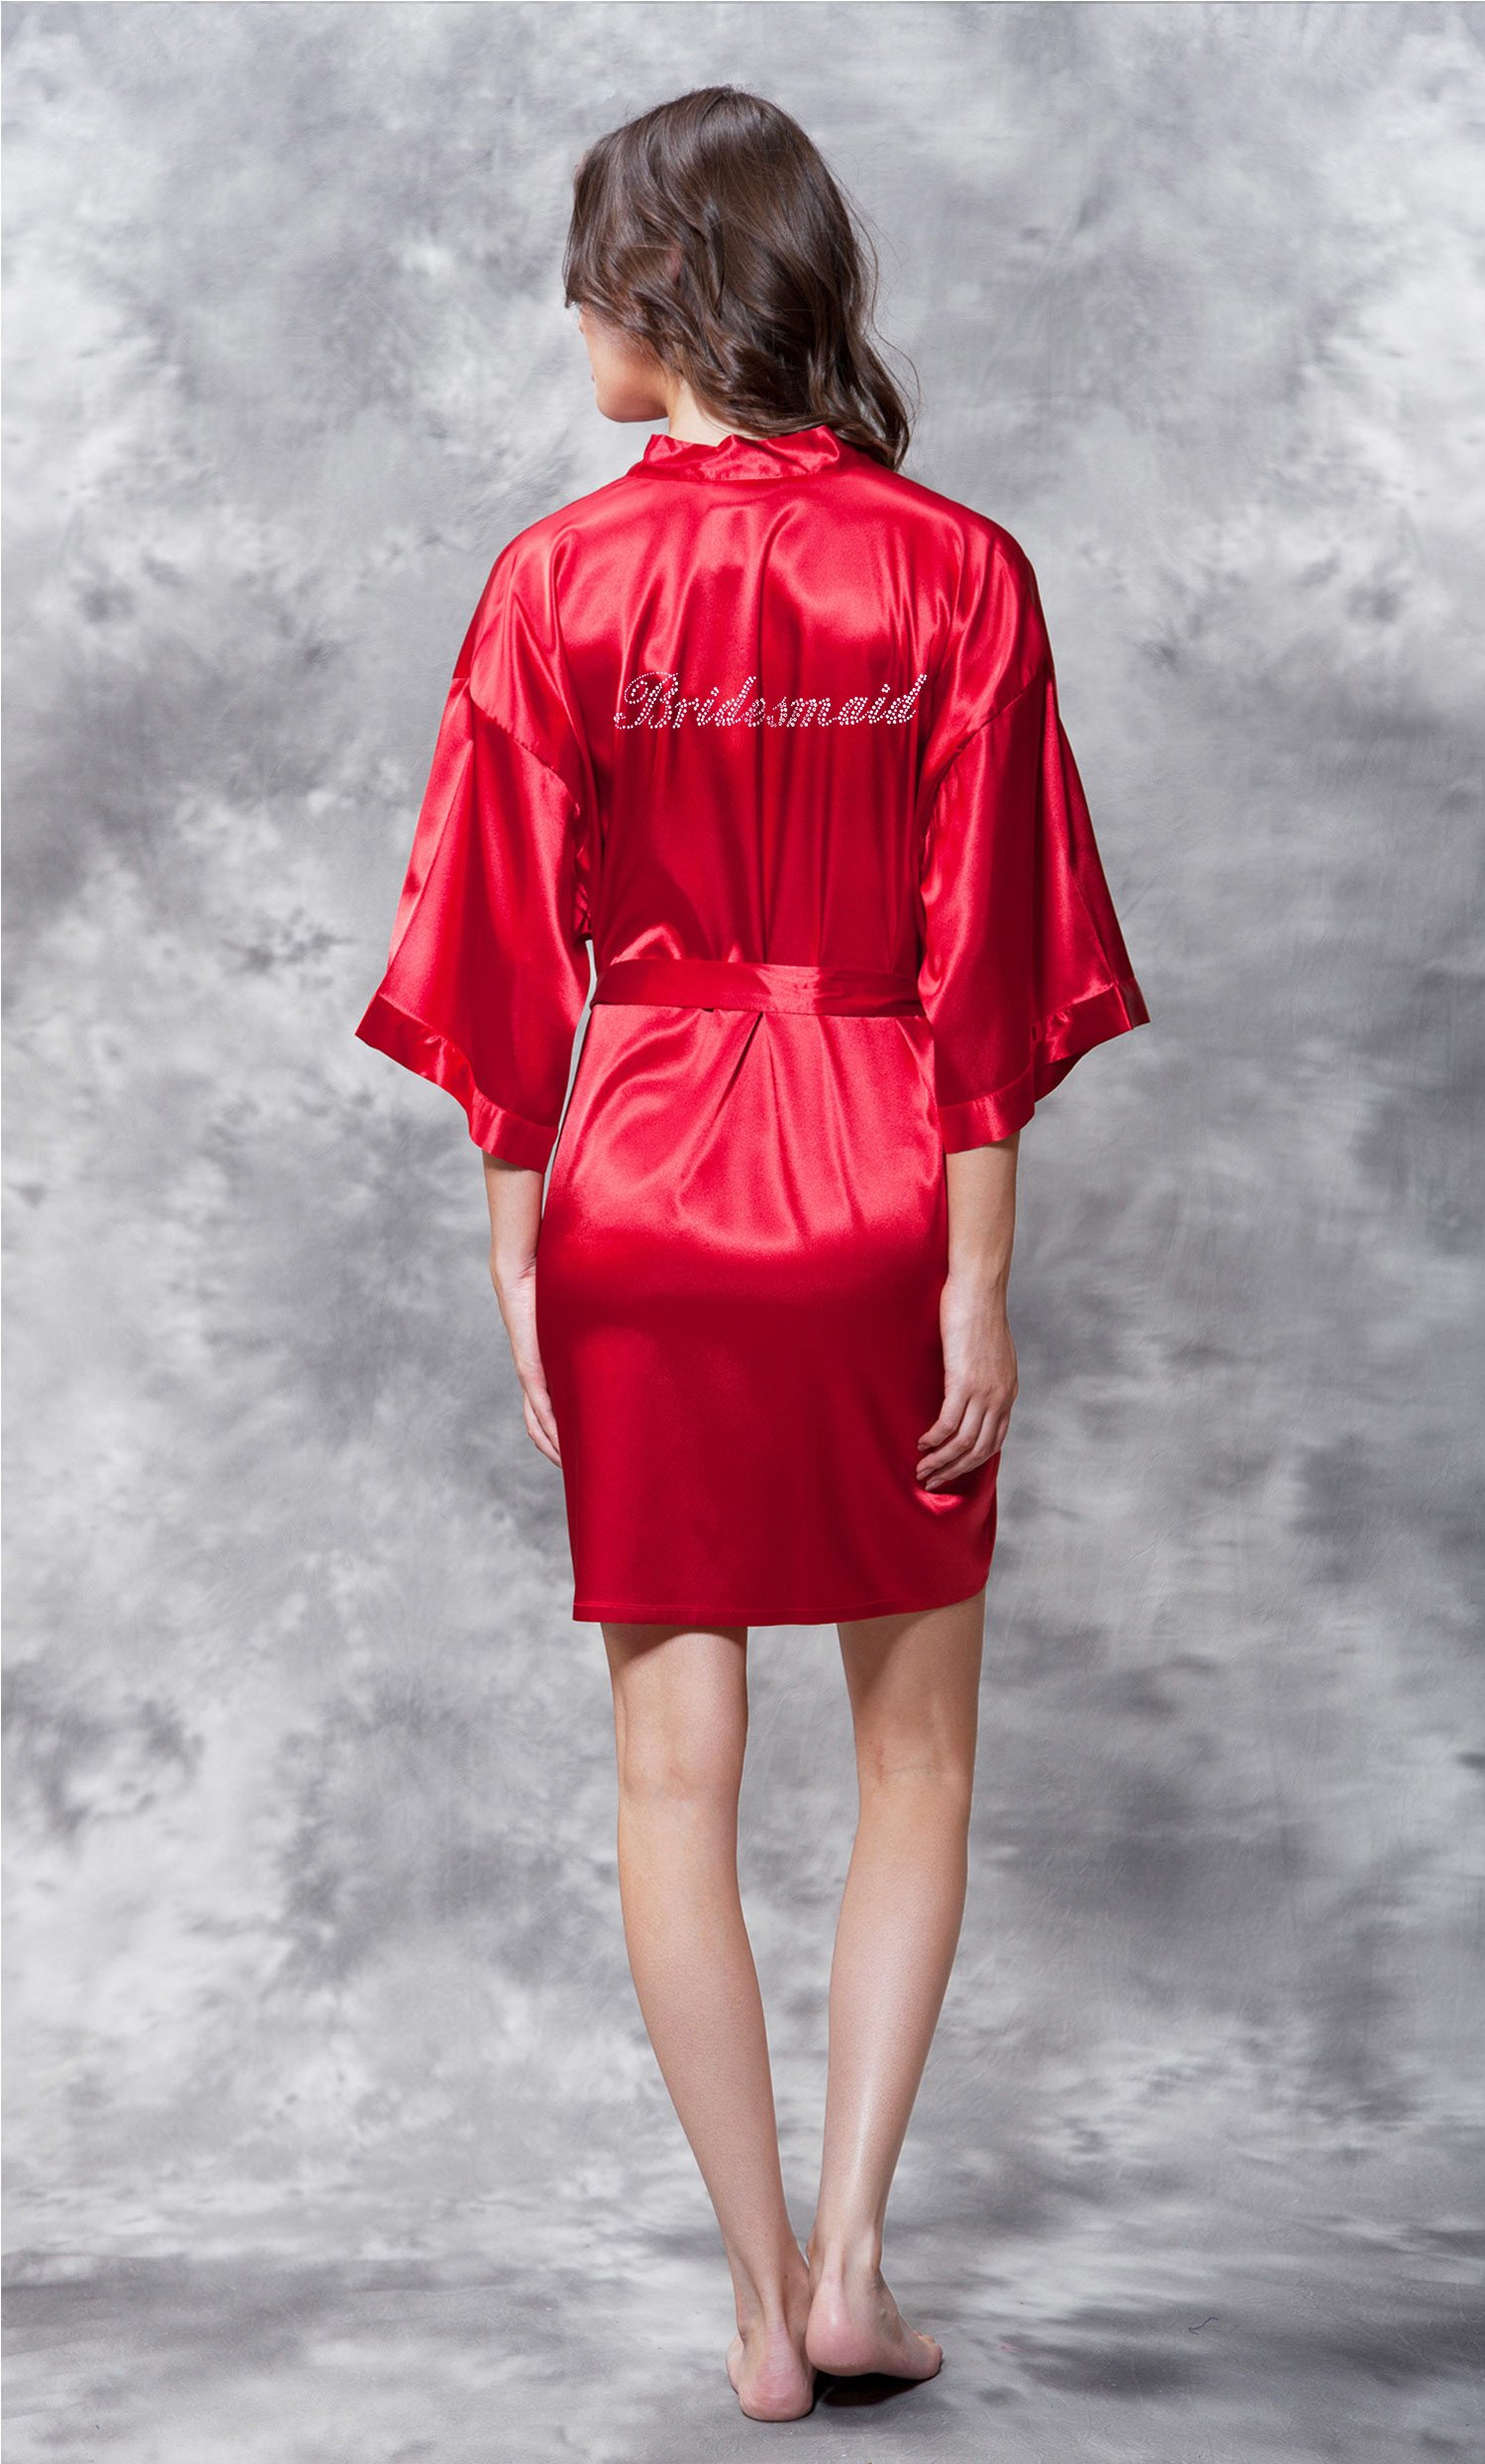 Bridesmaid Clear Rhinestone Satin Kimono  Short Robe - Final Sale-Robemart.com